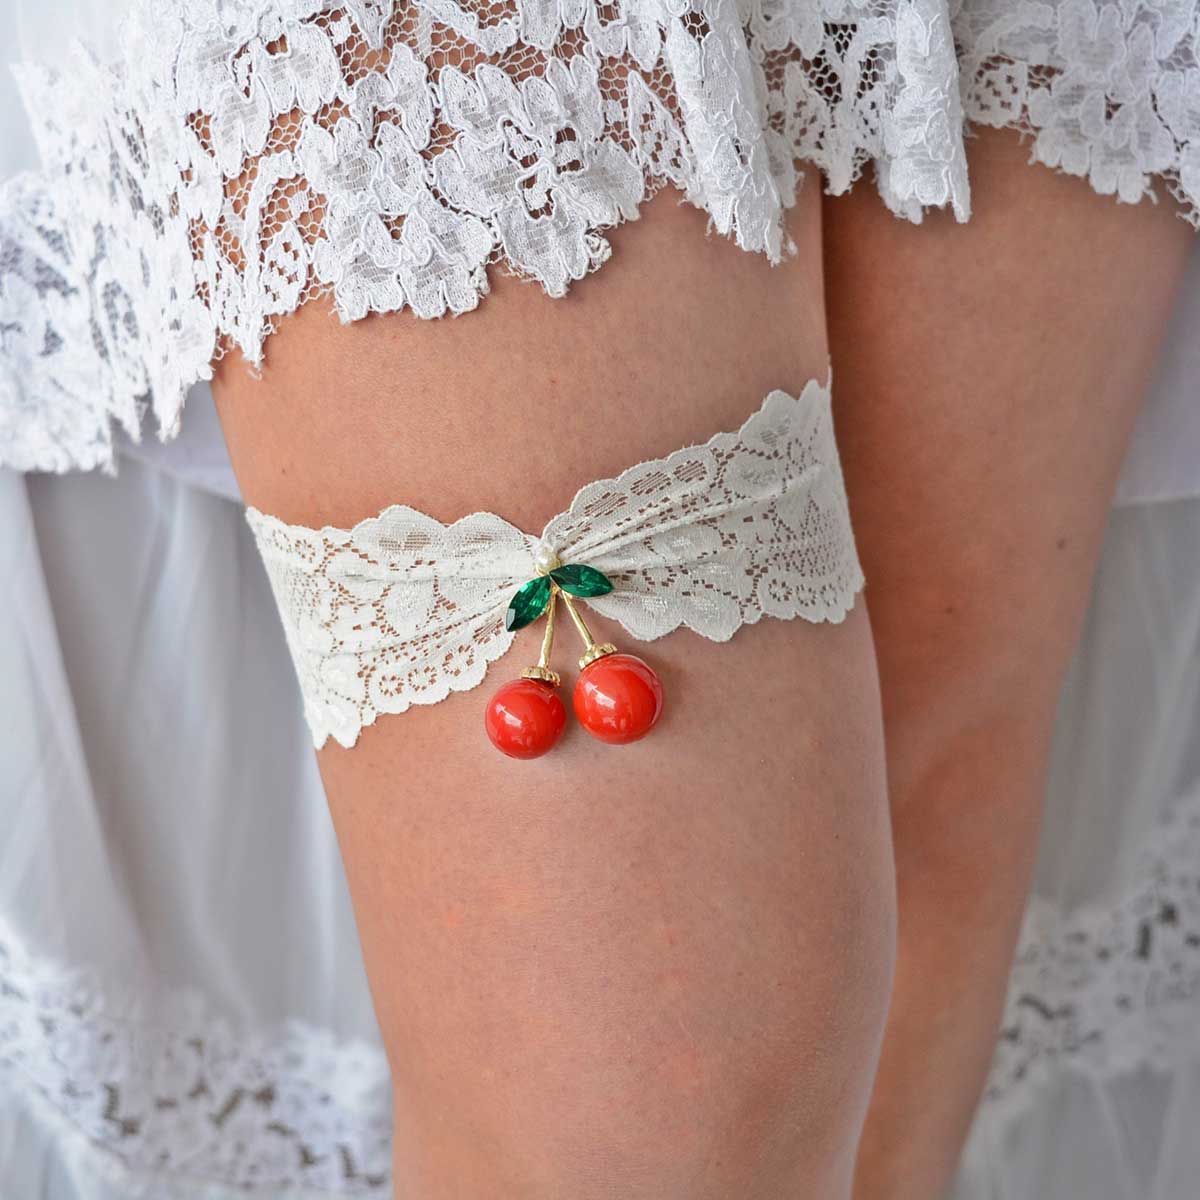 Ivory Wedding Garter Belt With Red Cherry Rhinestone